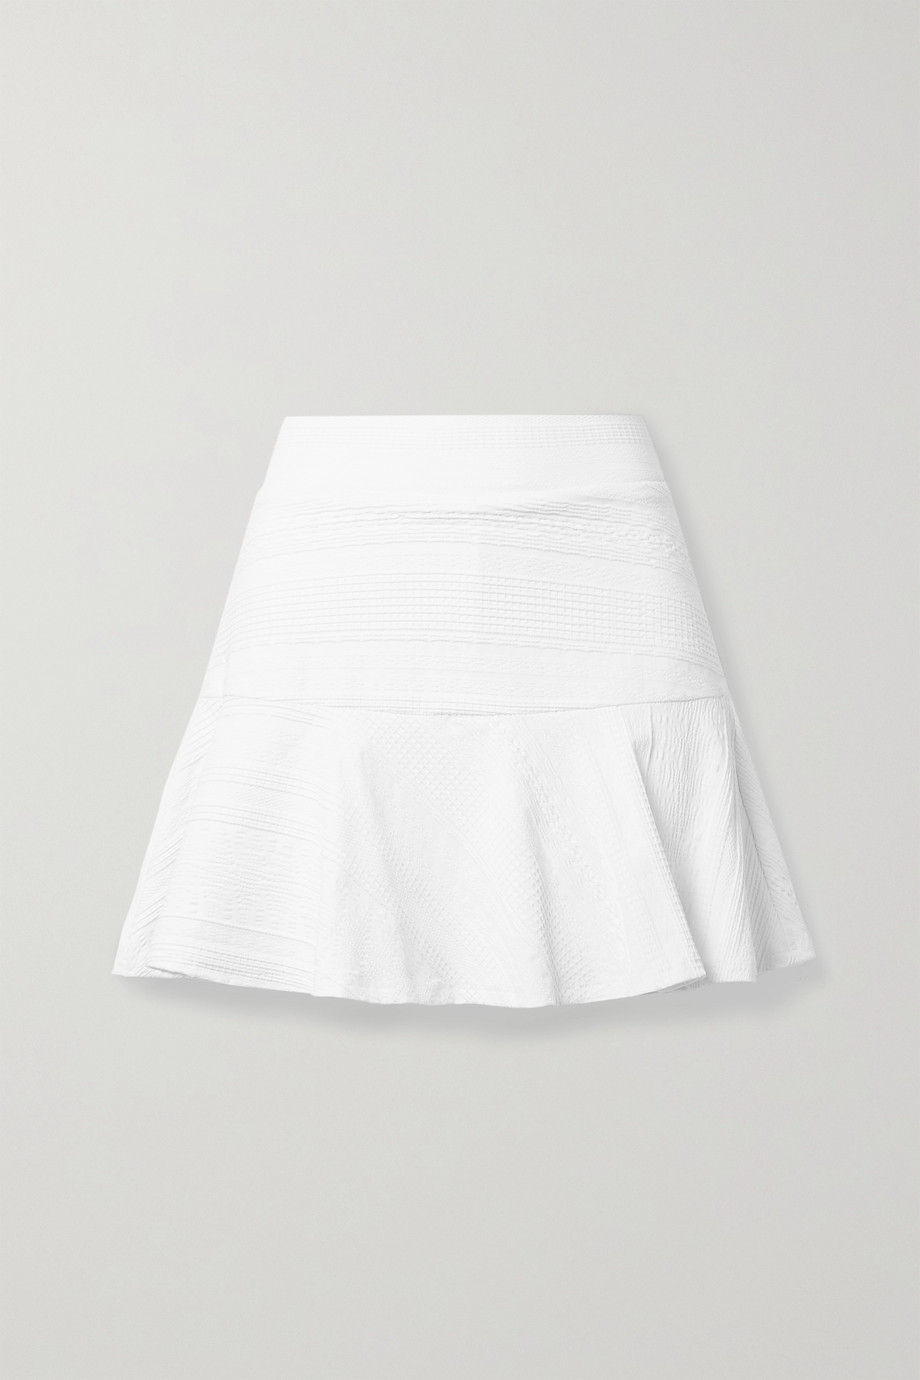 L'Etoile Sport Pleated textured stretch-jersey tennis skirt